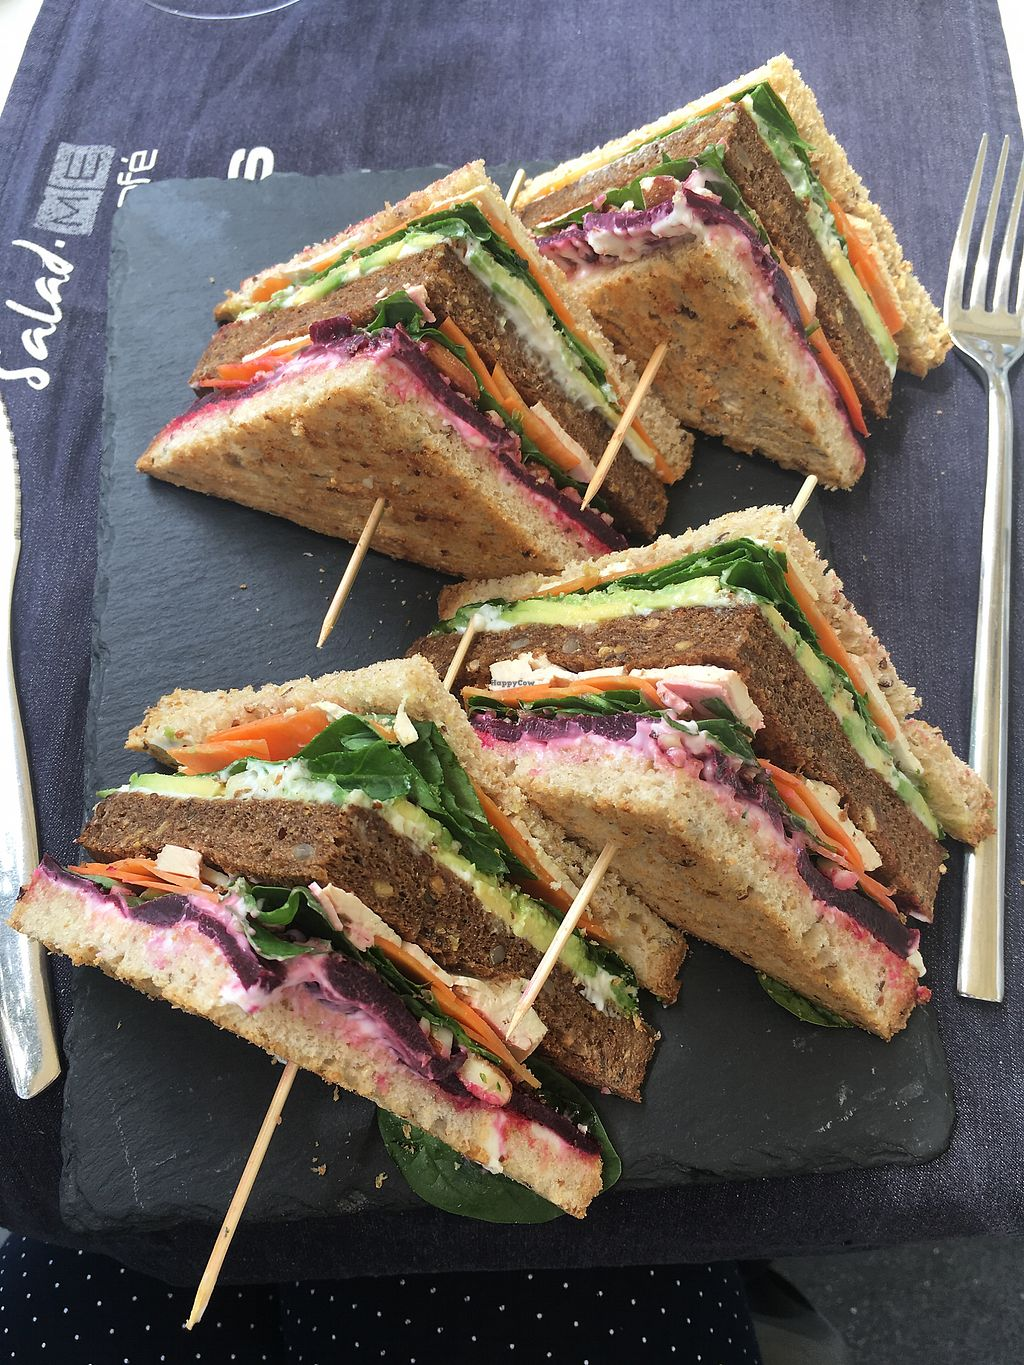 """Photo of Salad Me Cafe  by <a href=""""/members/profile/ElkeBa"""">ElkeBa</a> <br/>veganes Sandwich <br/> July 21, 2017  - <a href='/contact/abuse/image/55193/282868'>Report</a>"""